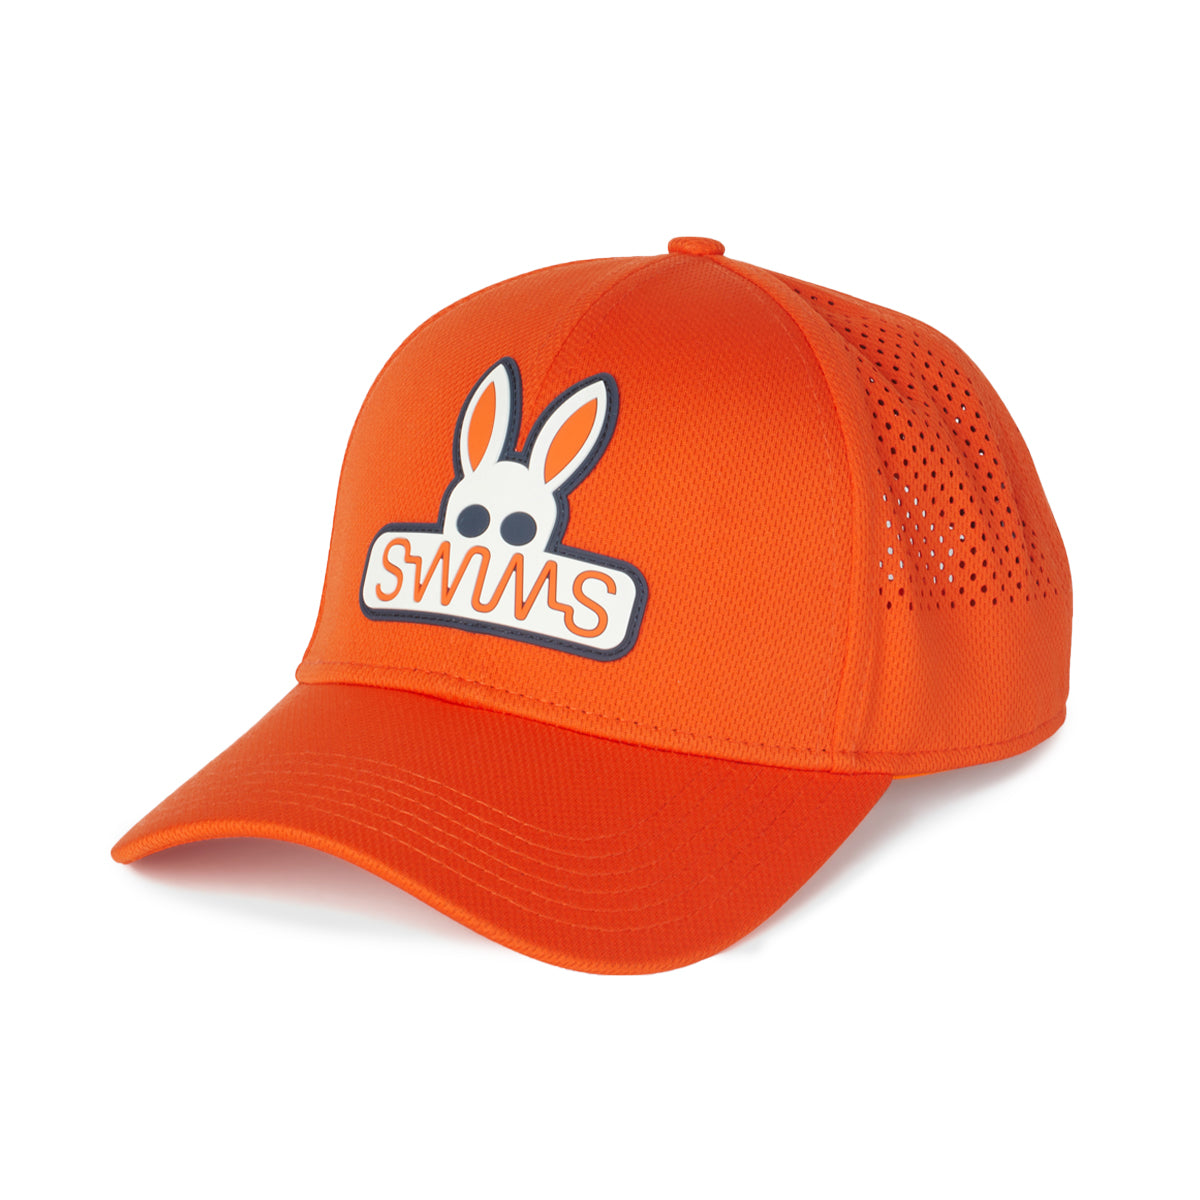 Psycho Bunny x SWIMS Baseball Cap - background::white,variant::vermillion